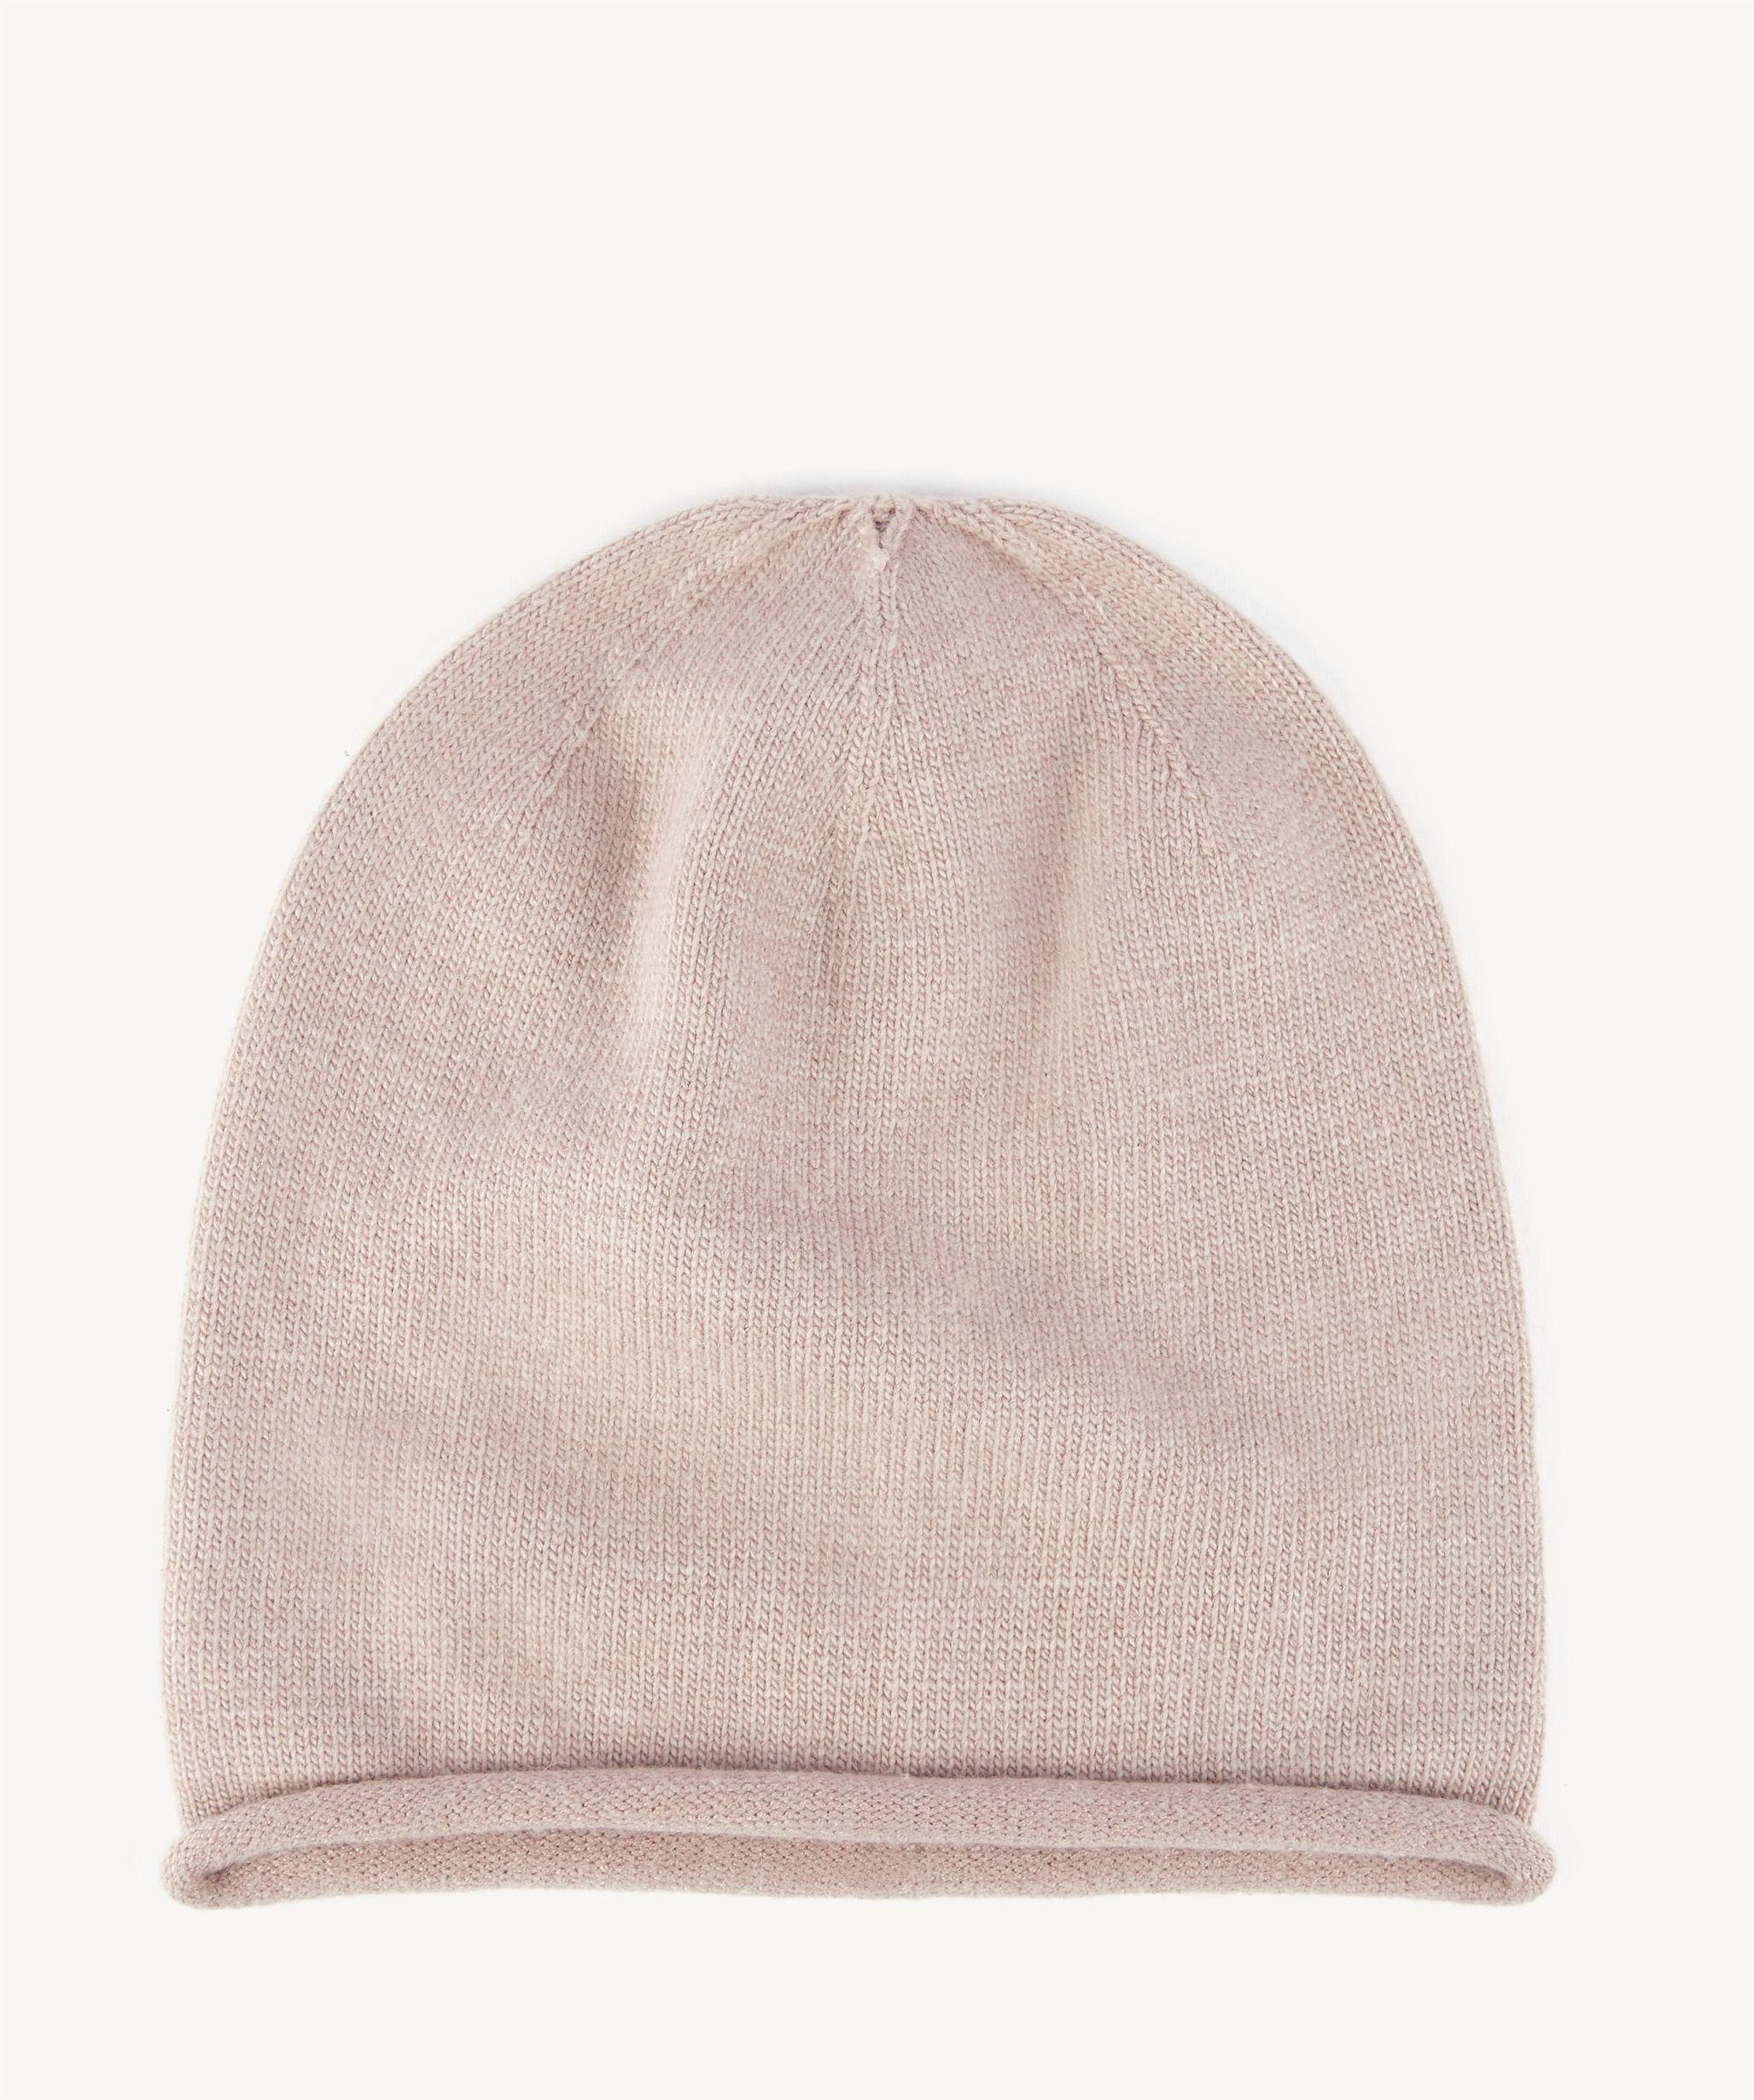 27935ab54ed Gallery. Previously sold at  Sole Society · Women s Beanies